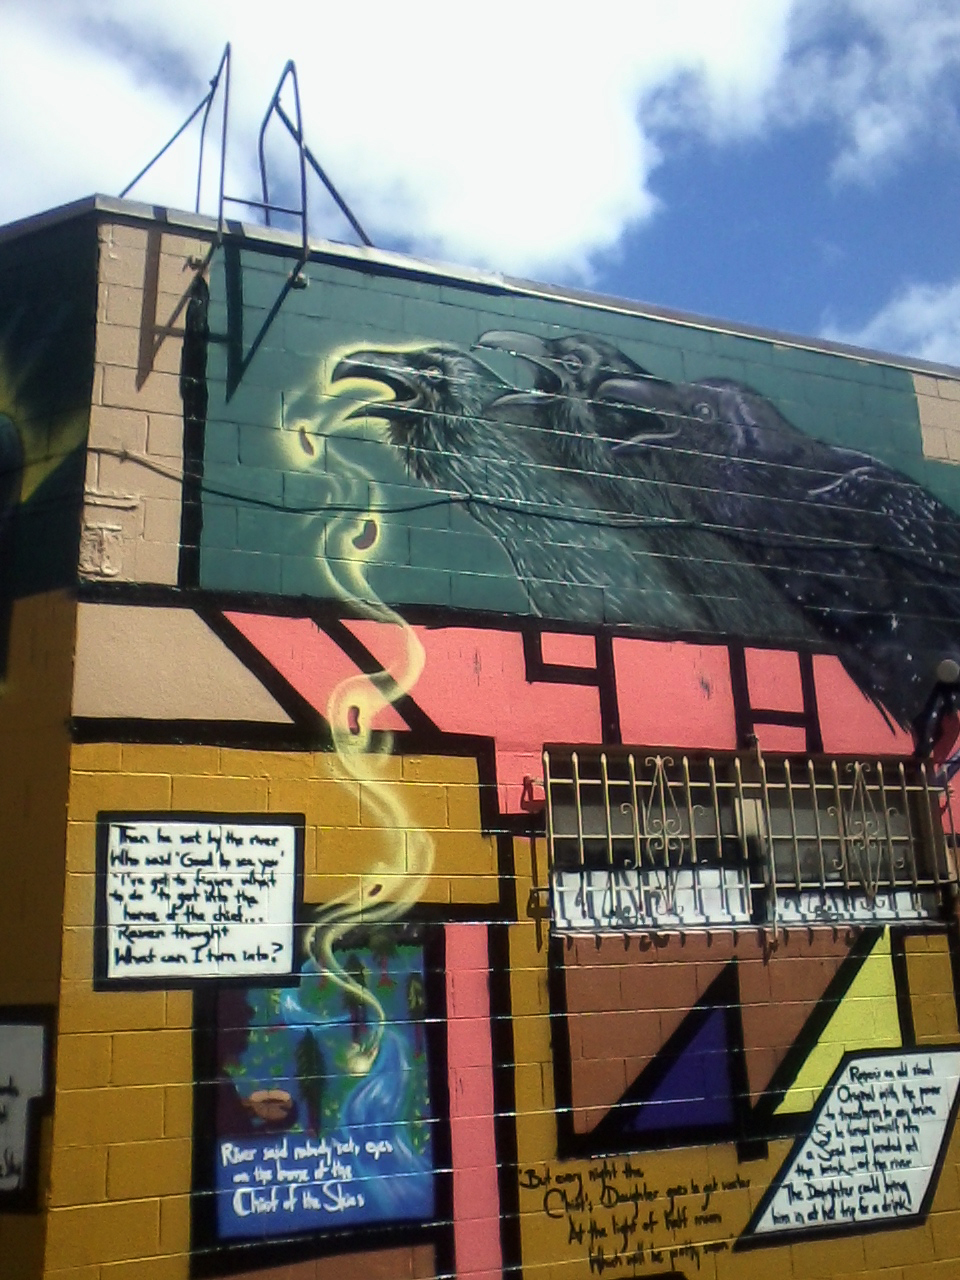 New murals in the neighborhood: Community Rejuvenation Project